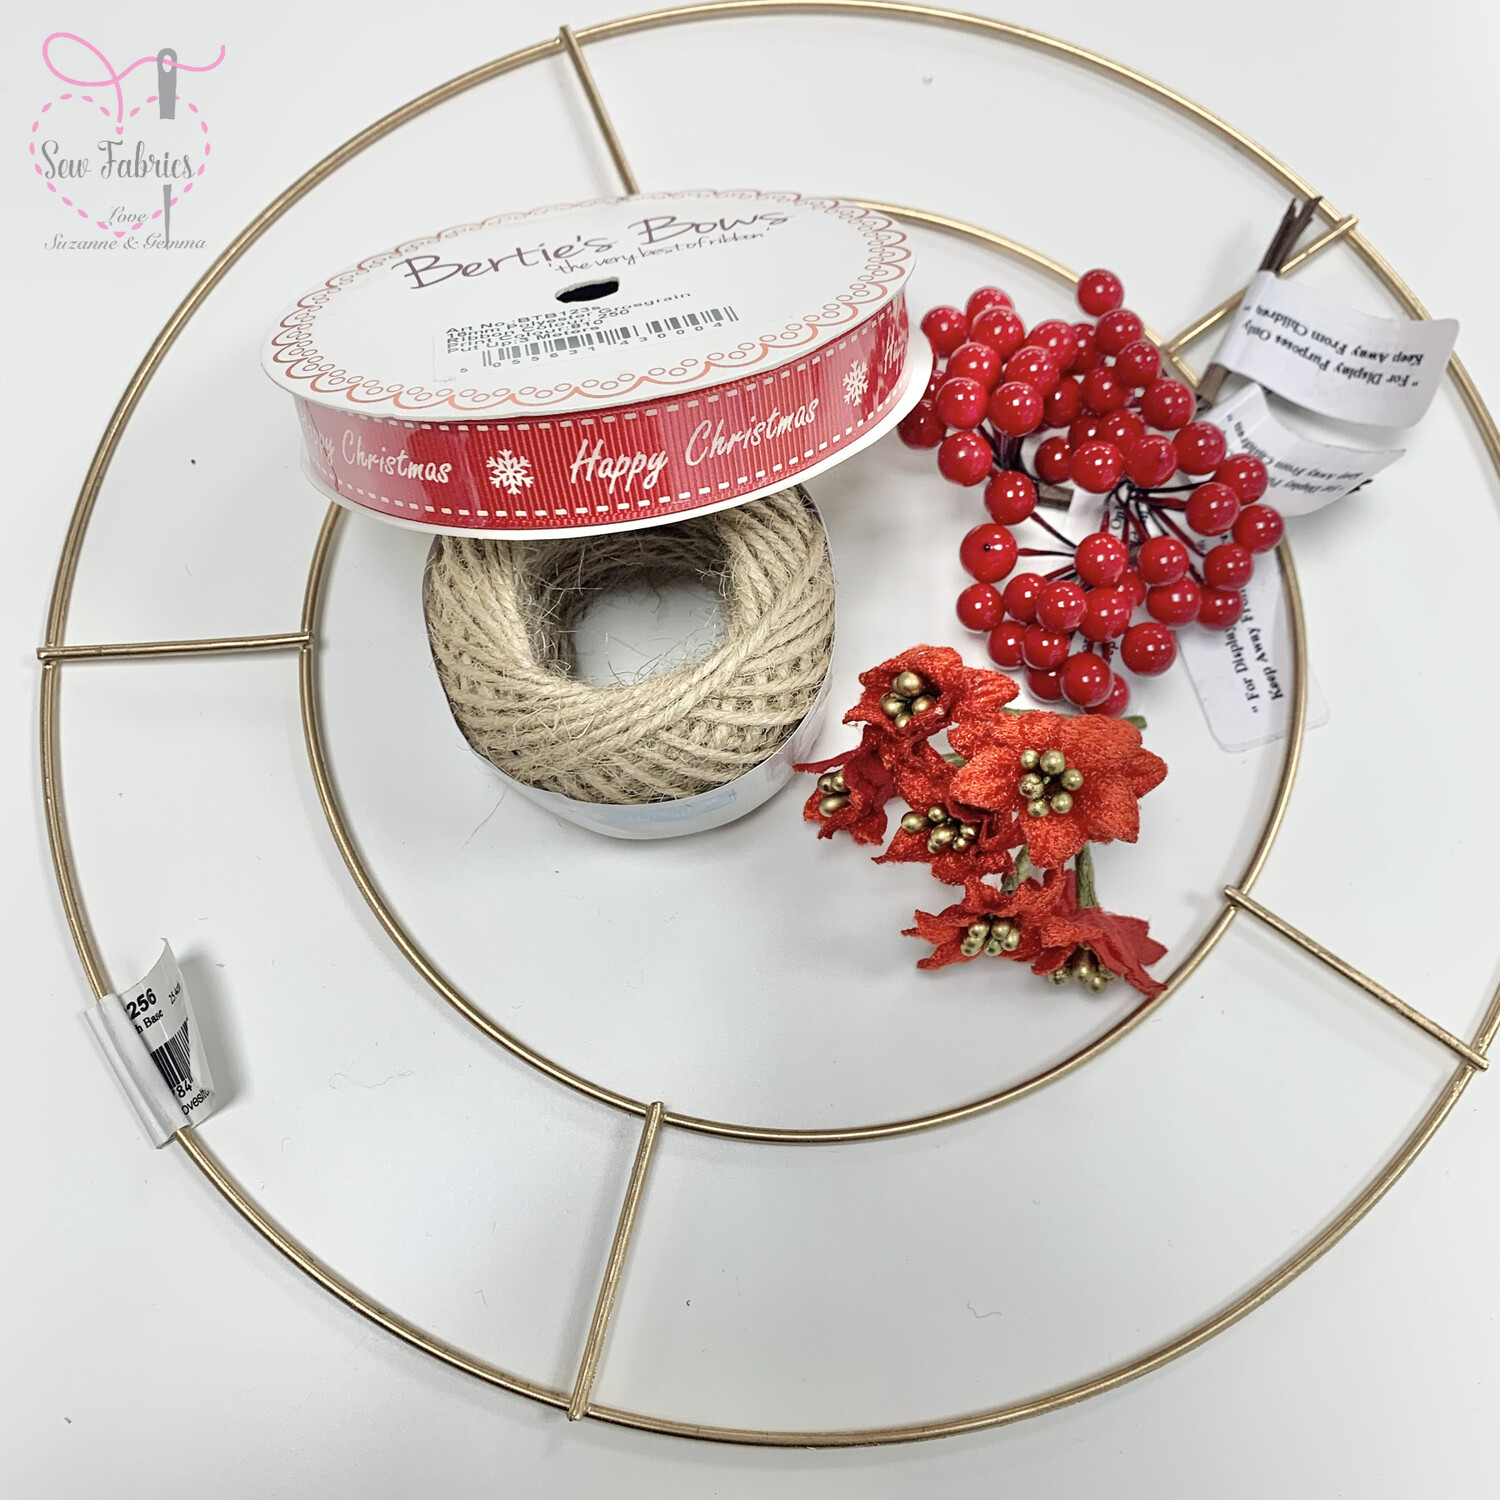 Christmas Wreath Make Your Own Wreath Kit including 25cm Wire Wreath, Red Berries, Poinsetta, Jute String and Xmas Ribbon